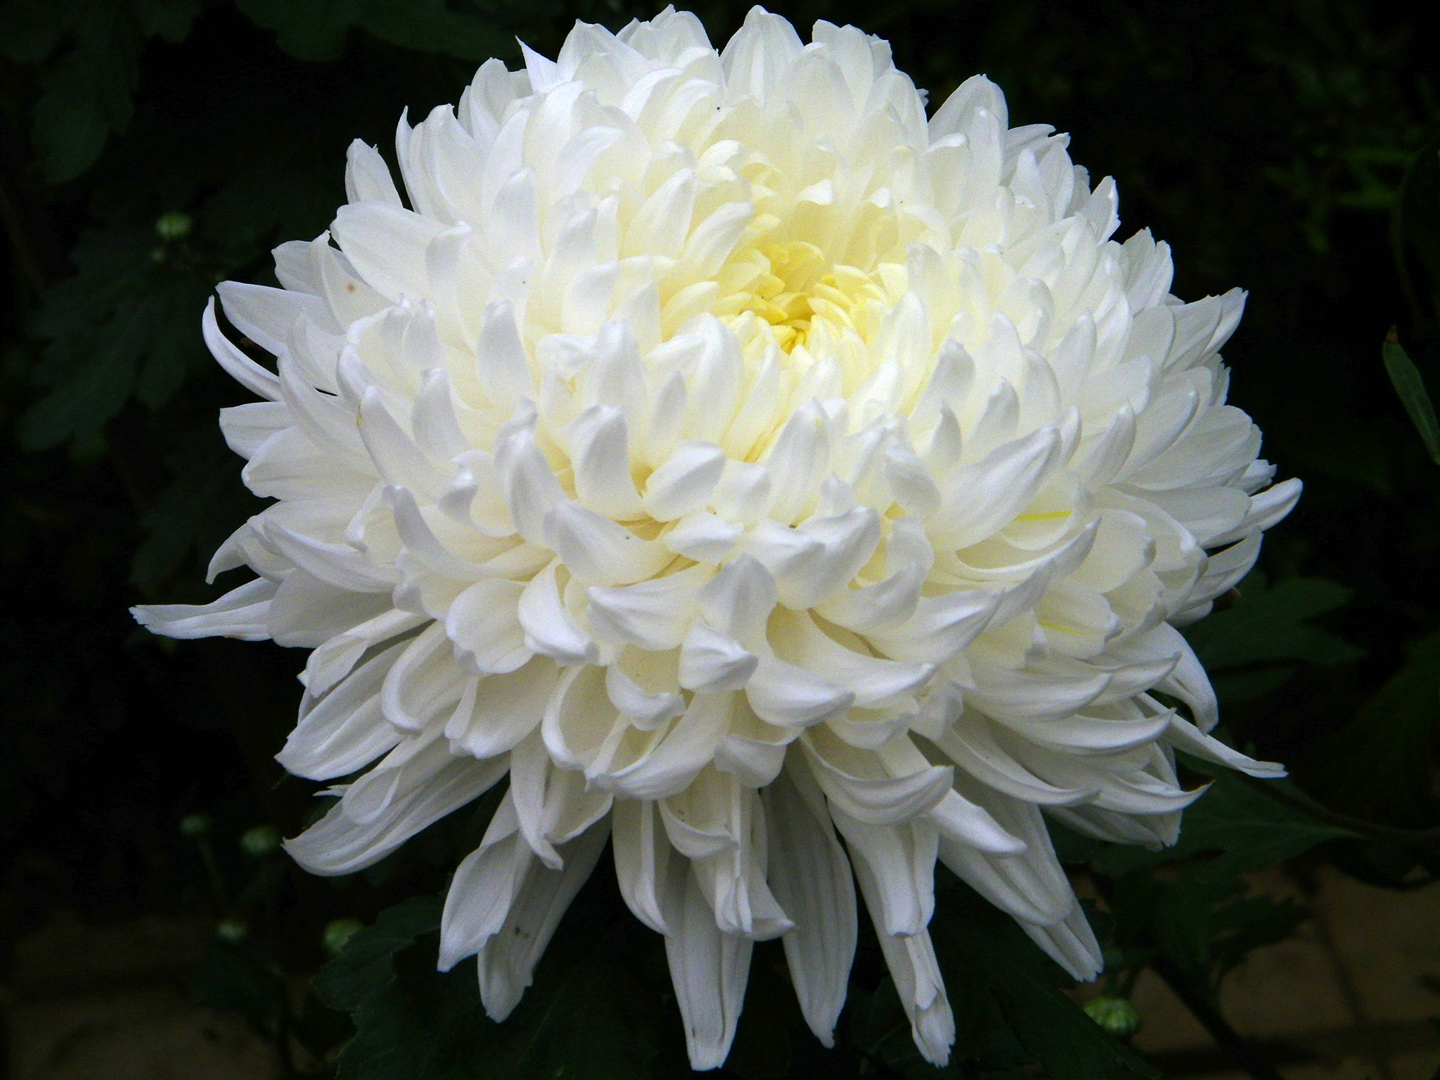 WhiteChrysanthemum